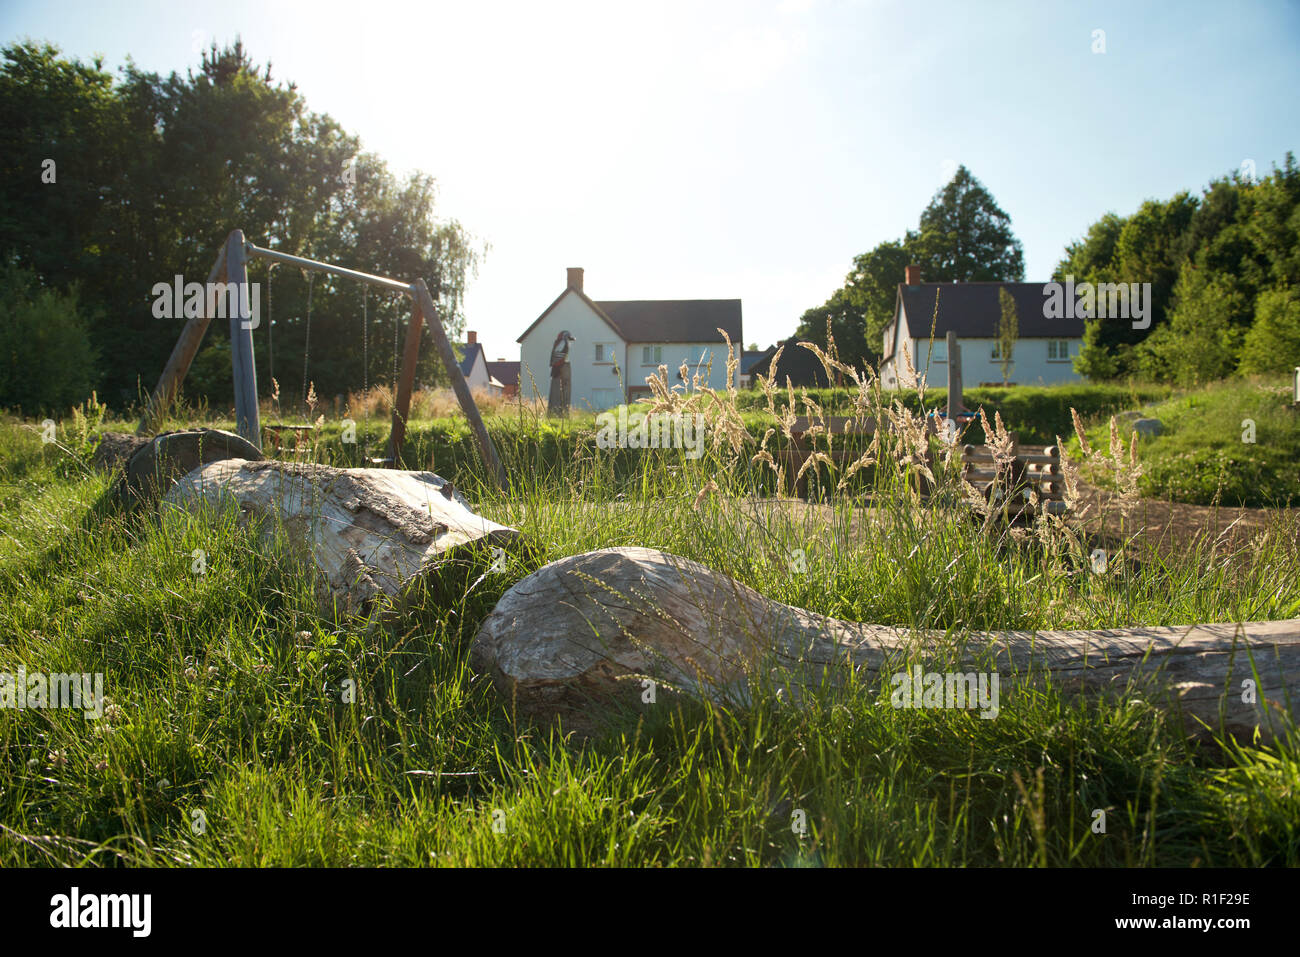 Open space reserve in low impact landscaping communal area - Stock Image